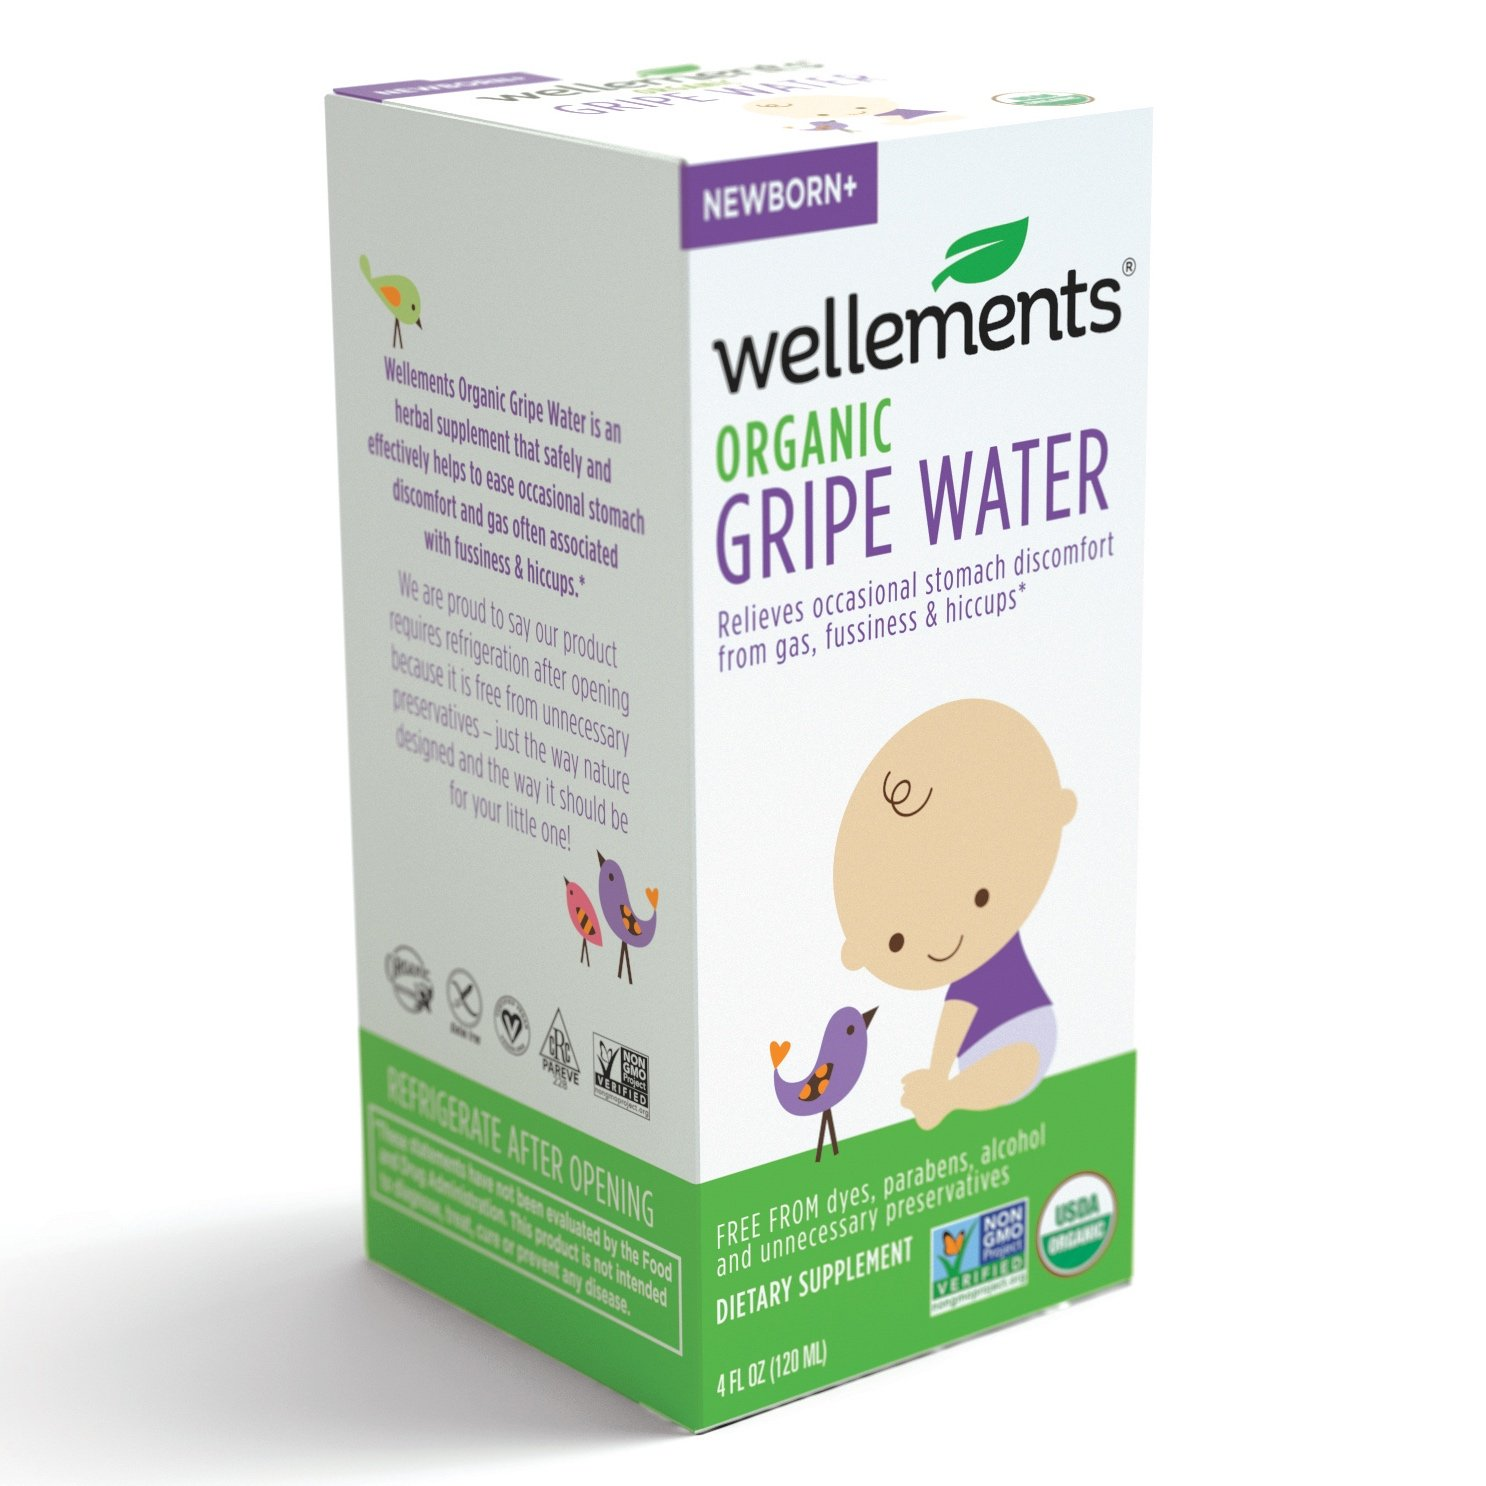 Wellements Organic Gripe Water for Tummy, 4 Fl Oz, 2 Count, Pediatrician Recommended to Ease Infant Stomach Discomfort and Gas